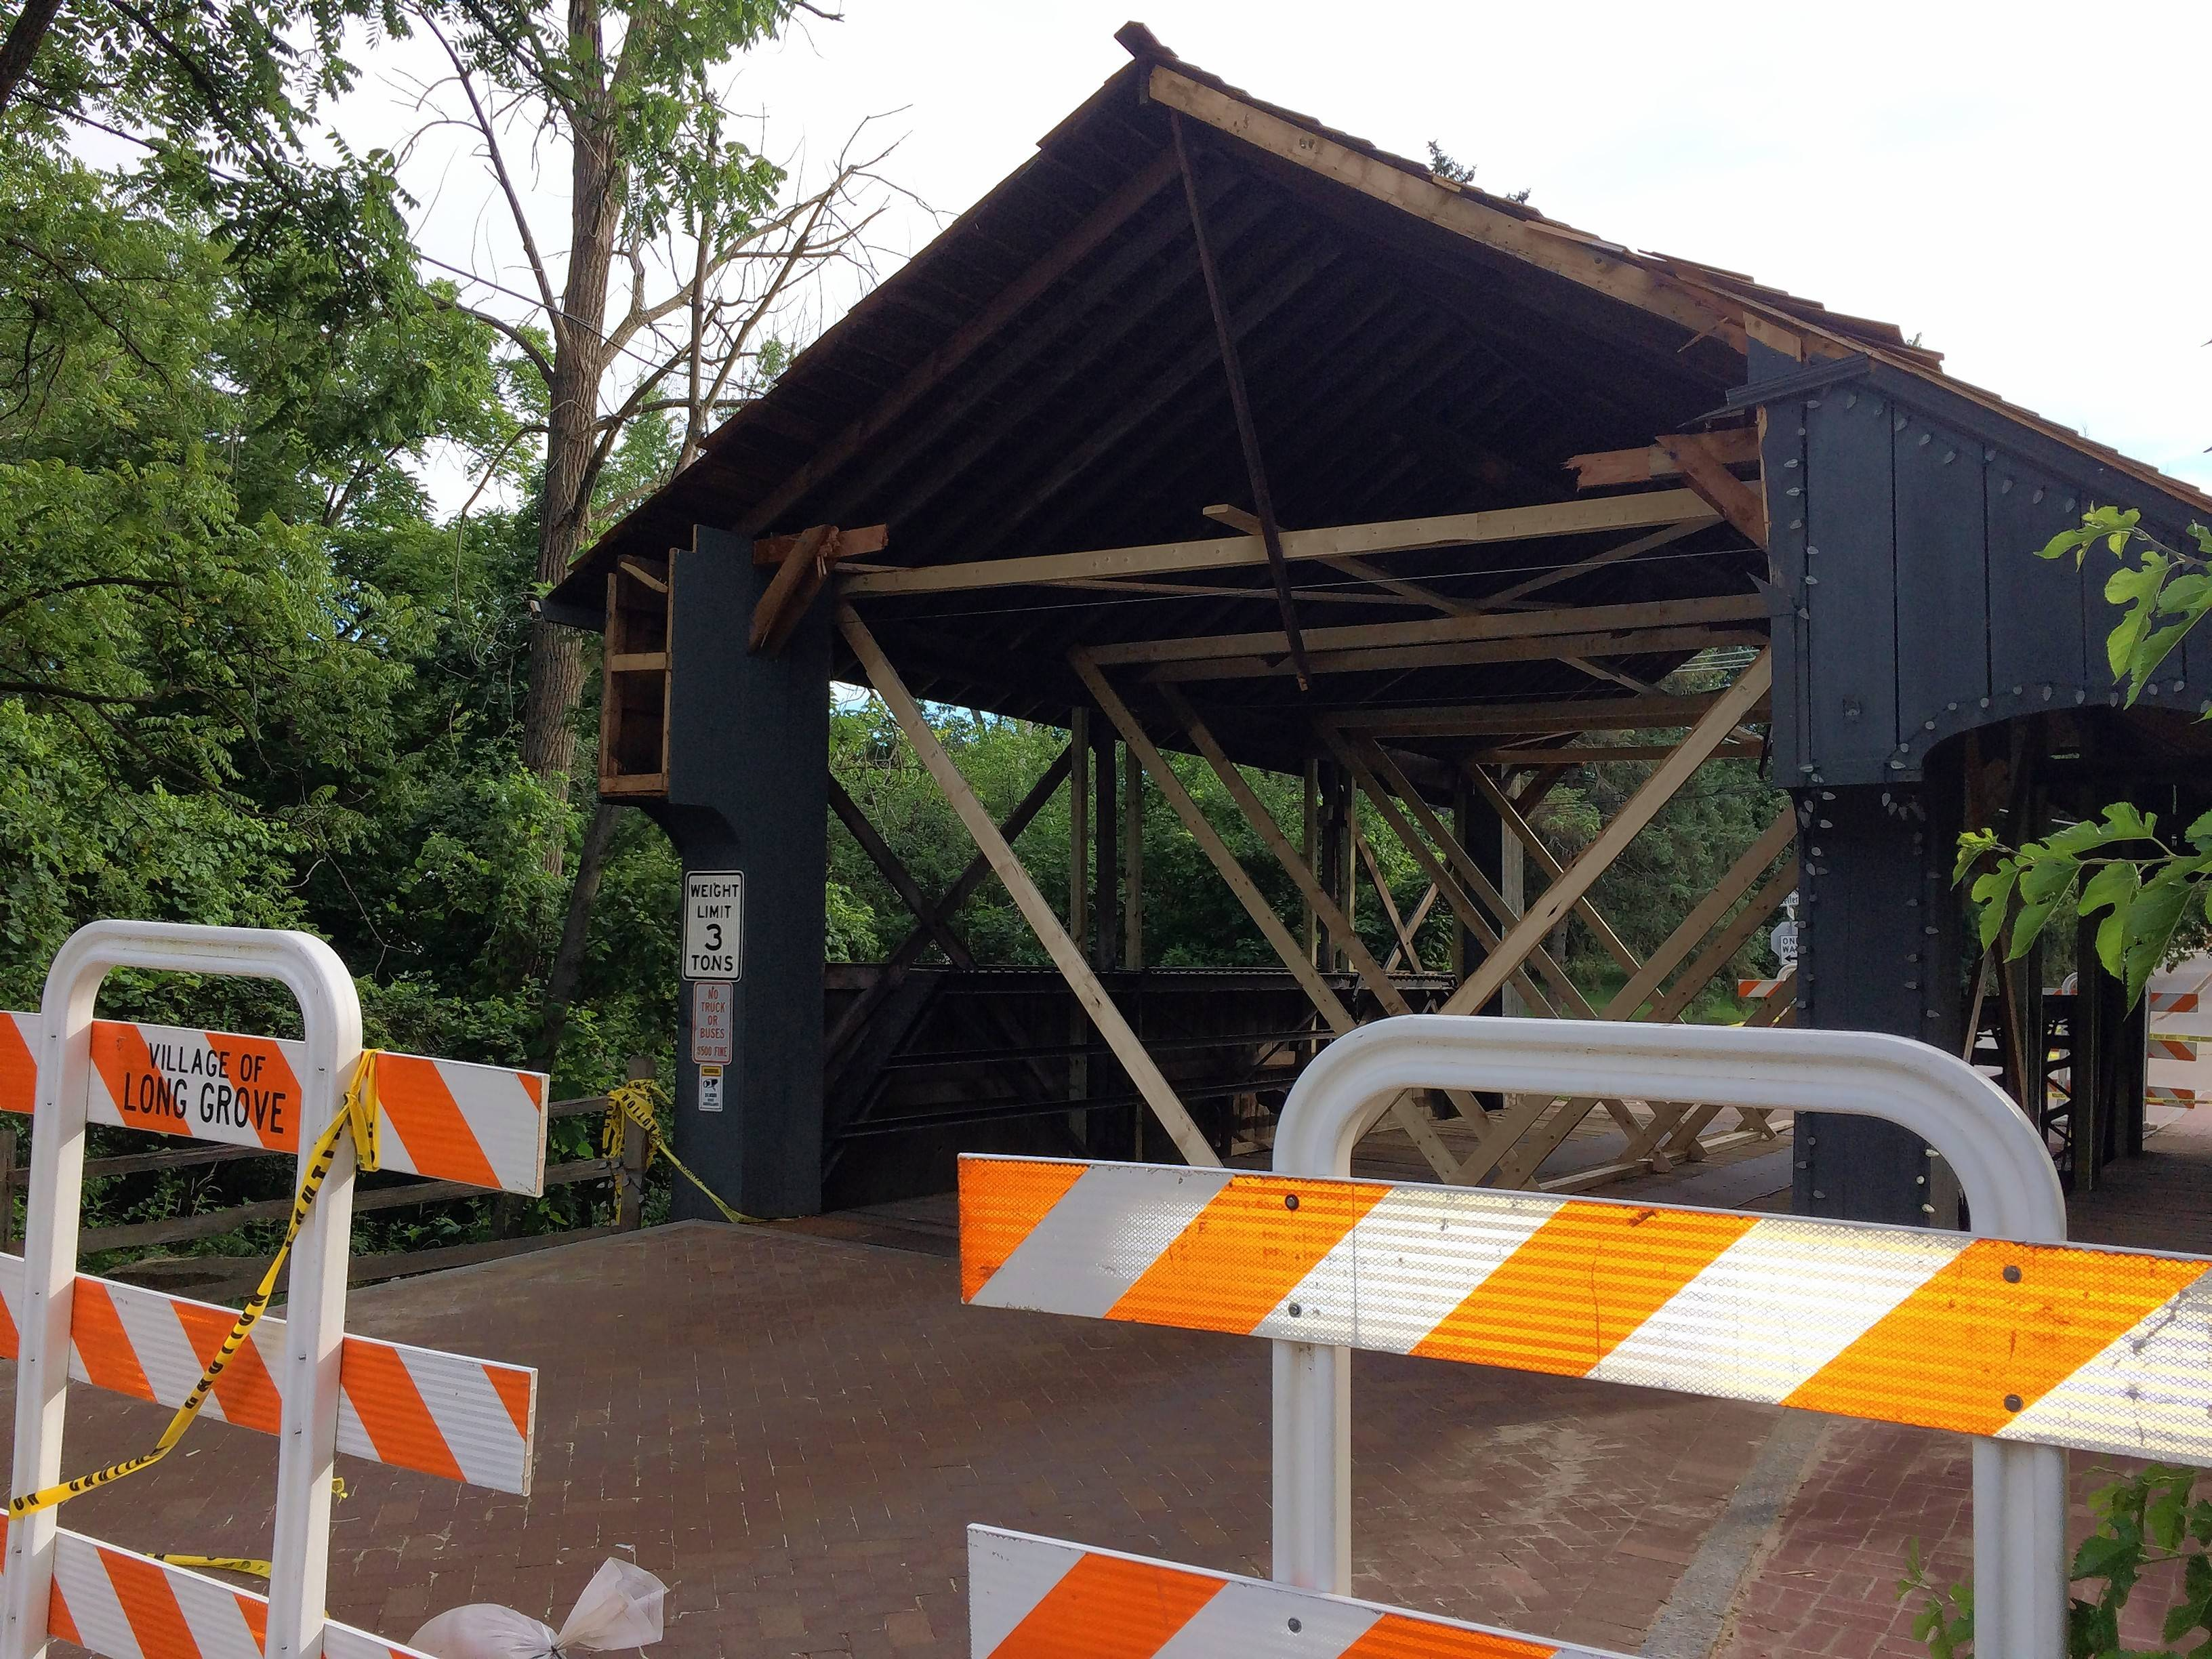 Long Grove's iconic covered bridge will be closed into next year to accommodate repairs to the span that sustained heavy damage due to a truck smashing through it soon after it became a national landmark in June, officials said at a village board meeting Tuesday night.